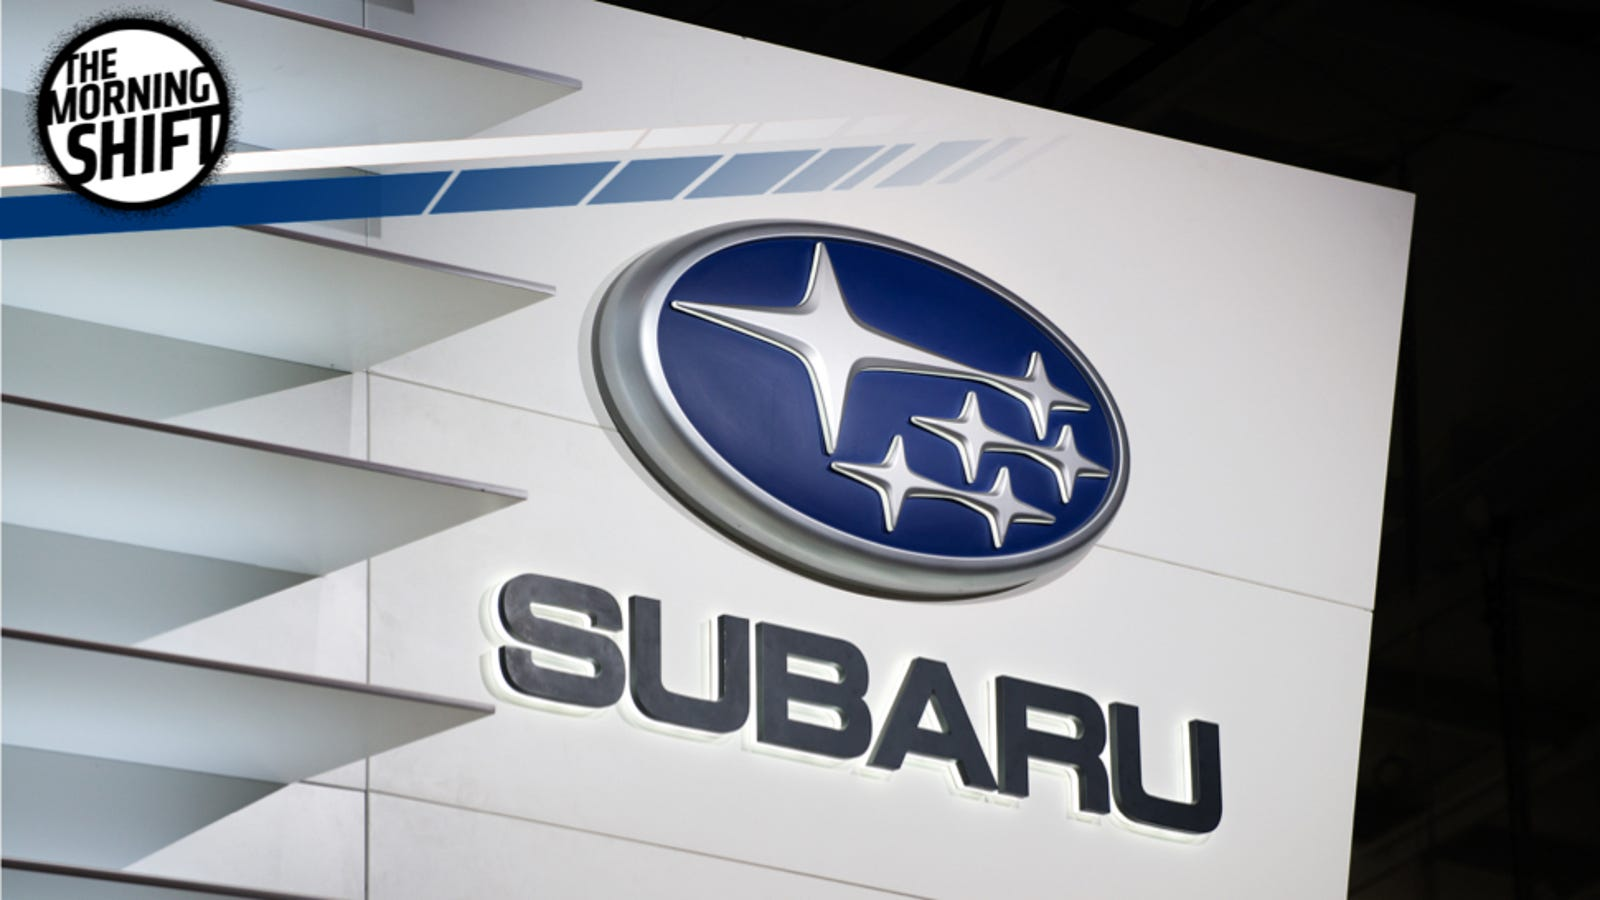 Subaru Promises To Improve After Admitting To Decades Of Sloppy New